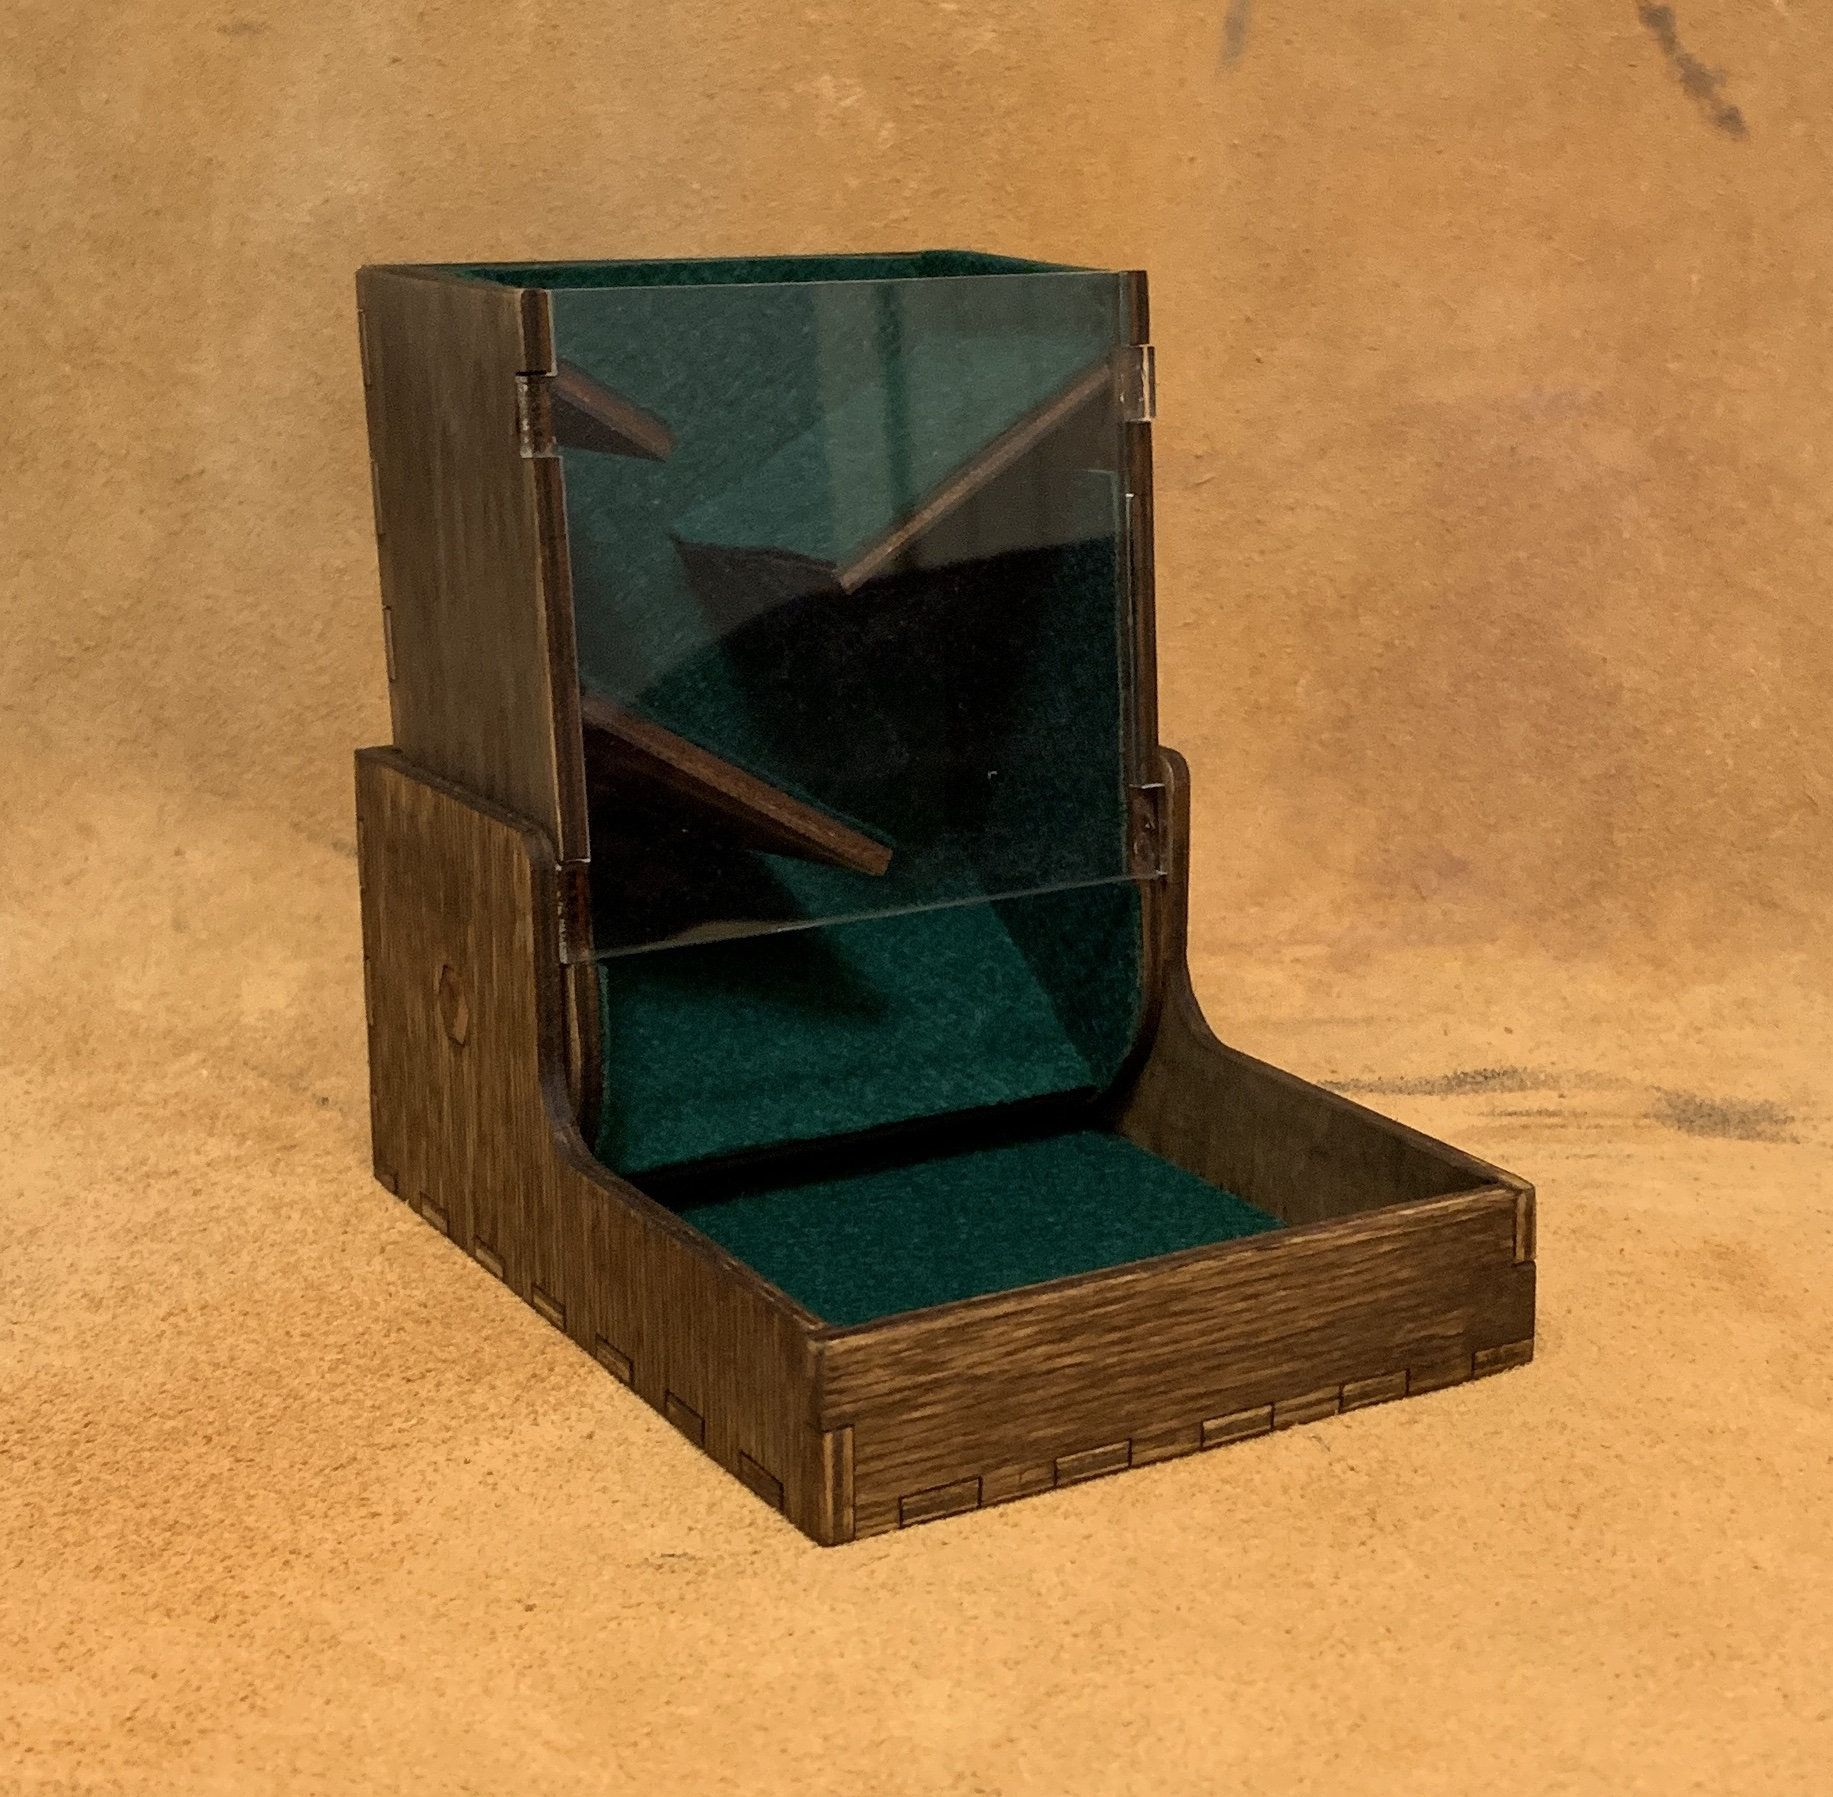 Foldable dice tower m